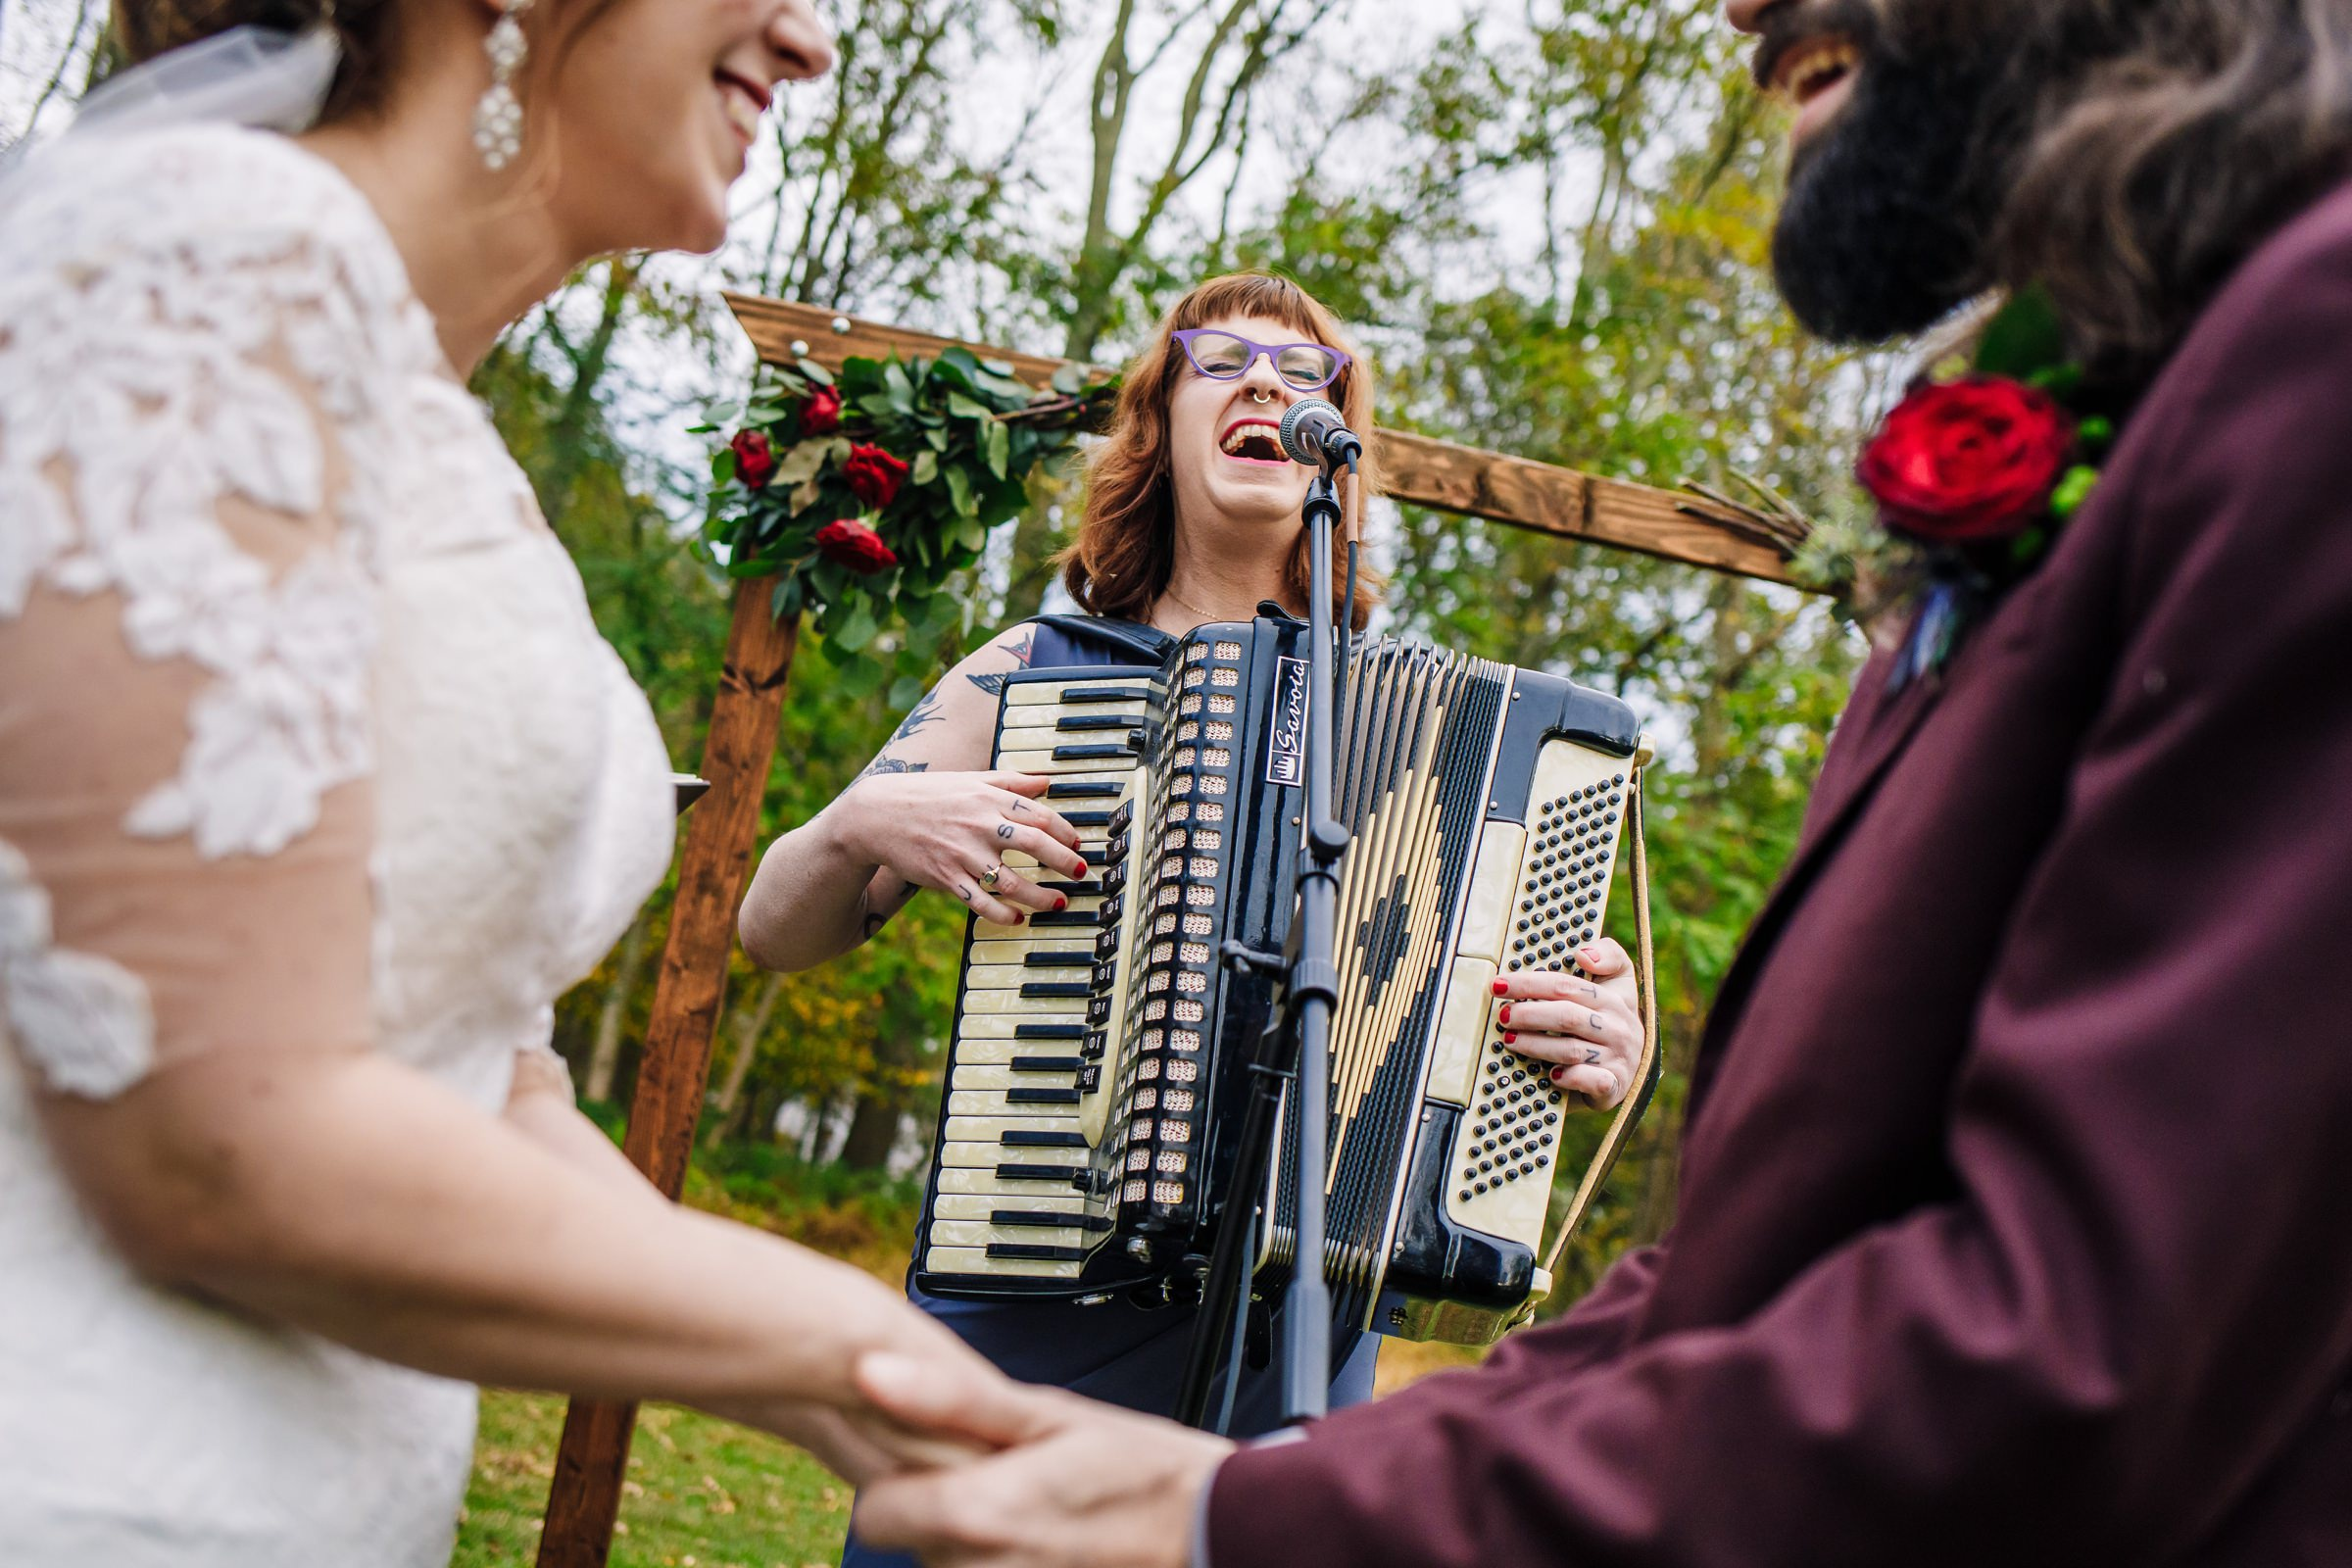 Accordion player sings during ceremony - photo by Photography by Brea